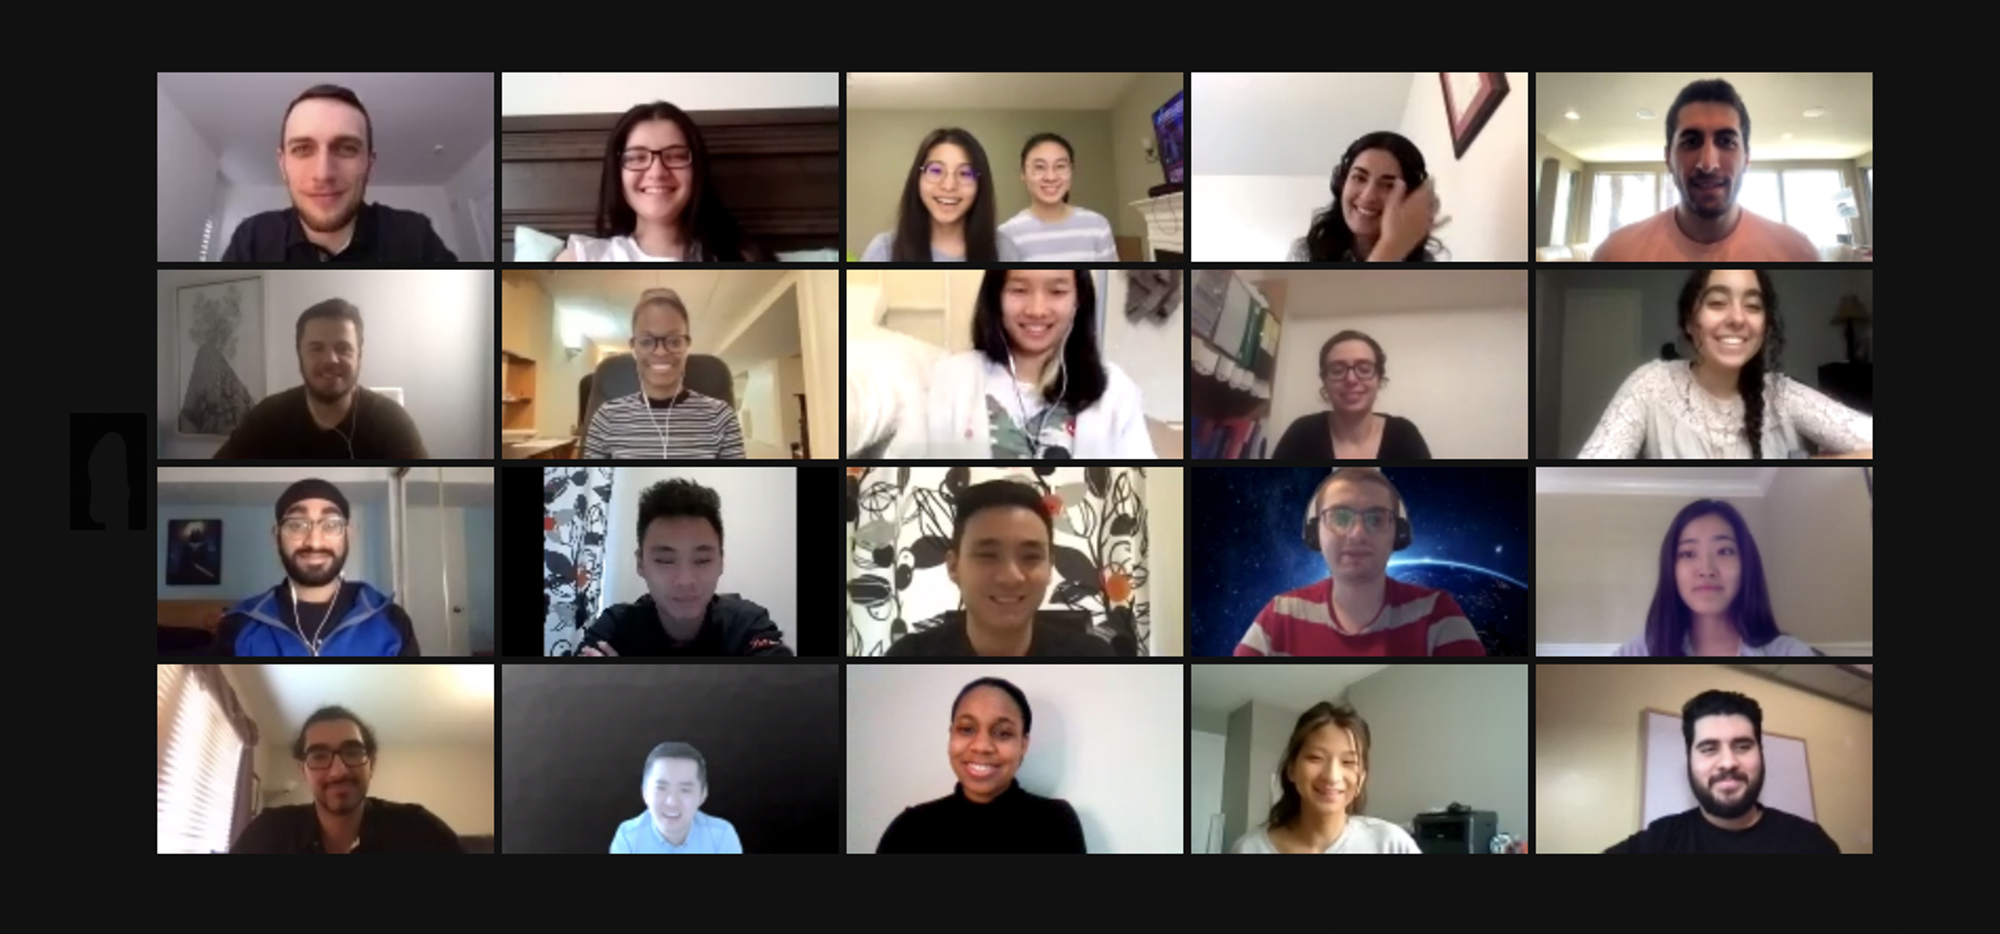 Smiling faces of participants in HackRx on a online call